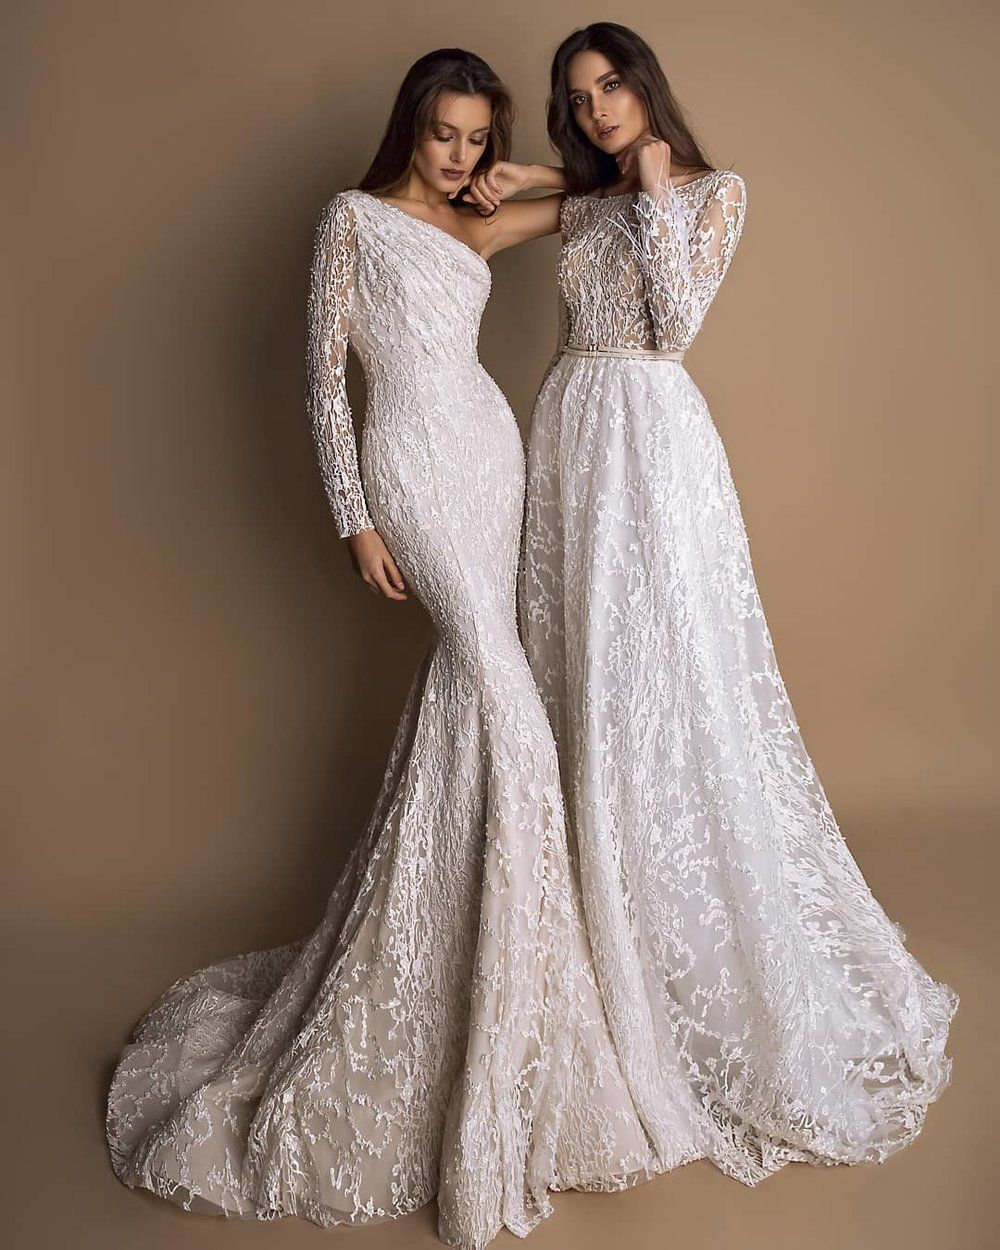 ca043f48126 OKSANA MUKHA — Charmè Gaby Tampa Bay Wedding dresses Demi and Eveline